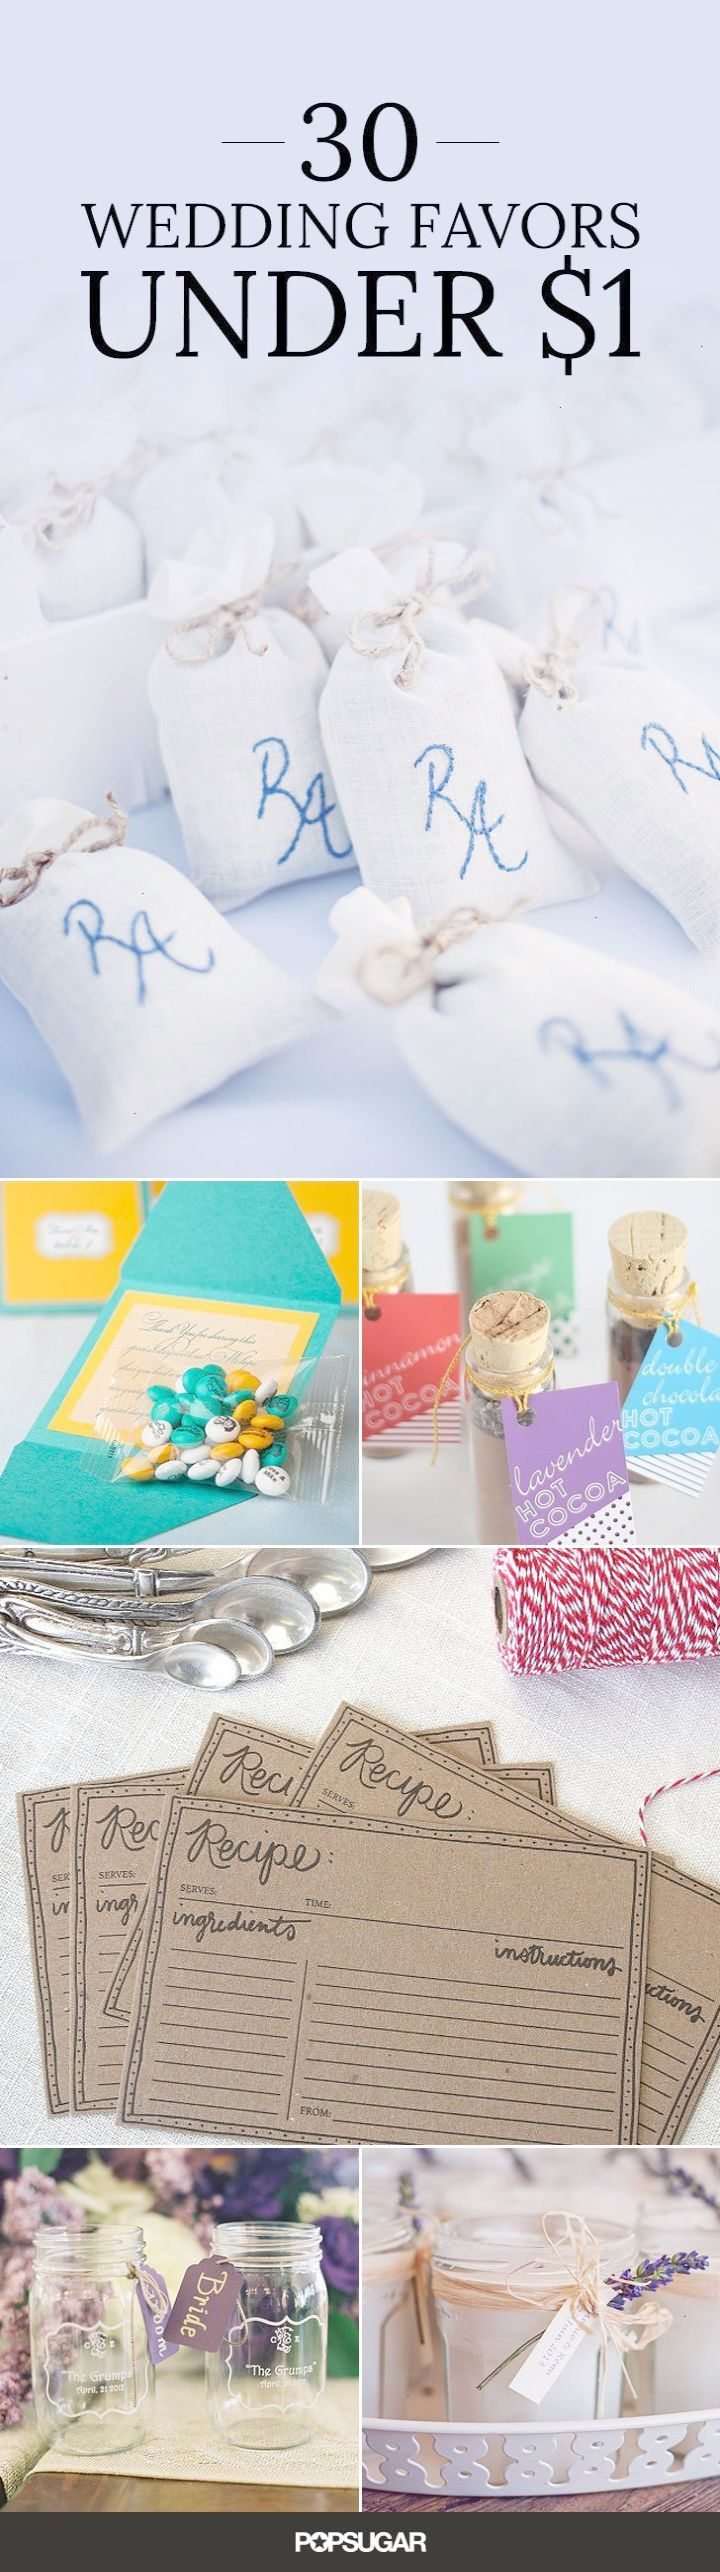 13426 best Wedding Favors images on Pinterest | Weddings, Wedding ...